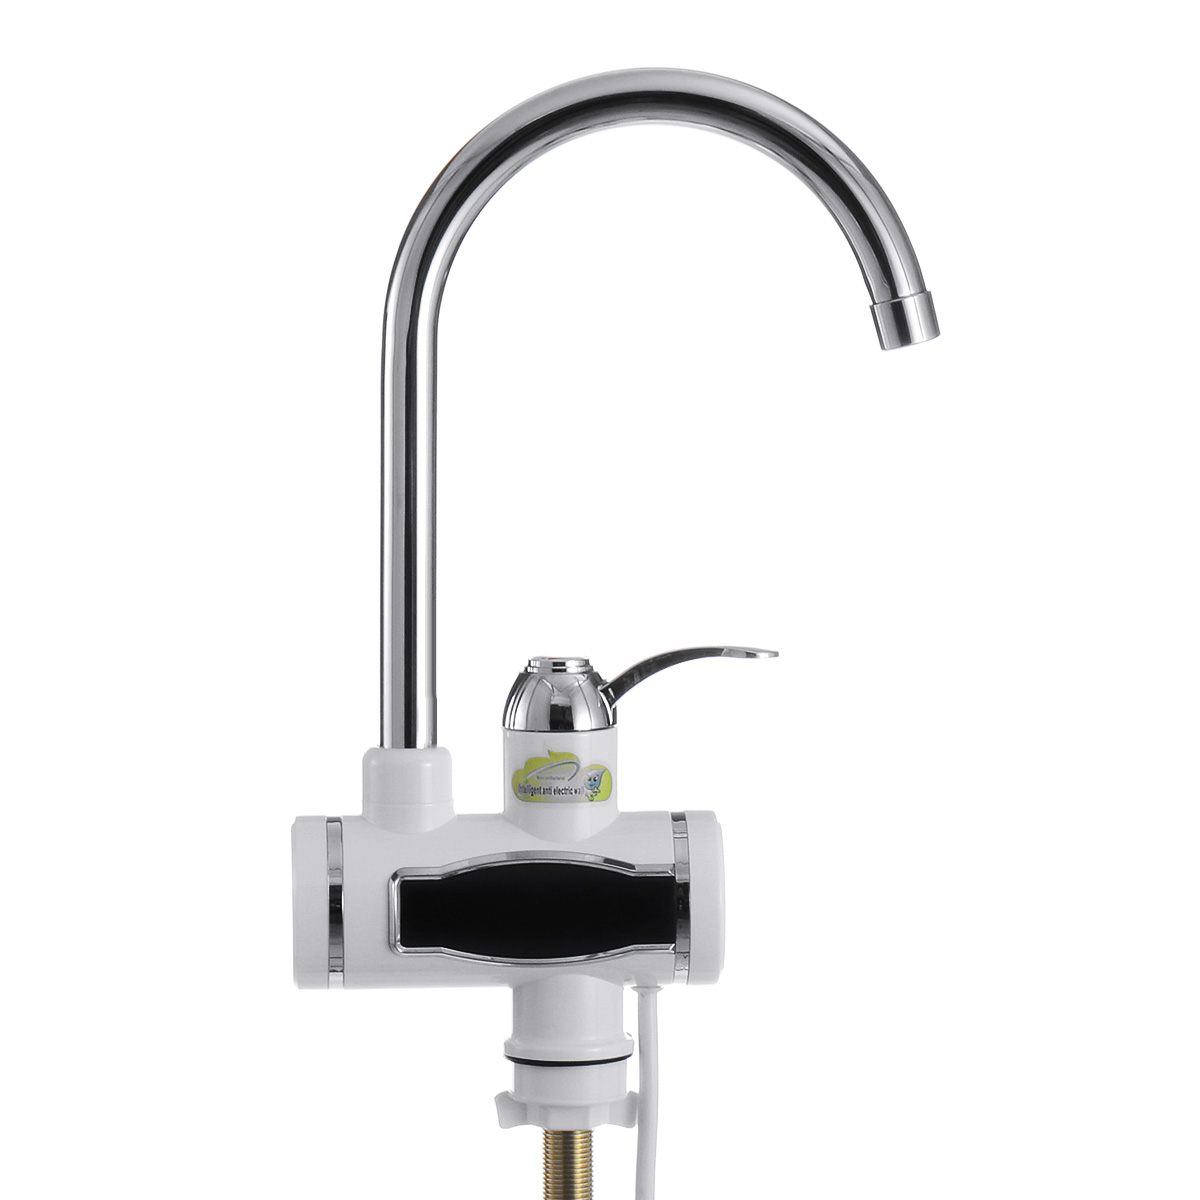 Home 220V 3000W Instant Electric Faucet Tap Hot Water Heater Stainless Steel Under Inflow LED Display Bathroom Kitchen